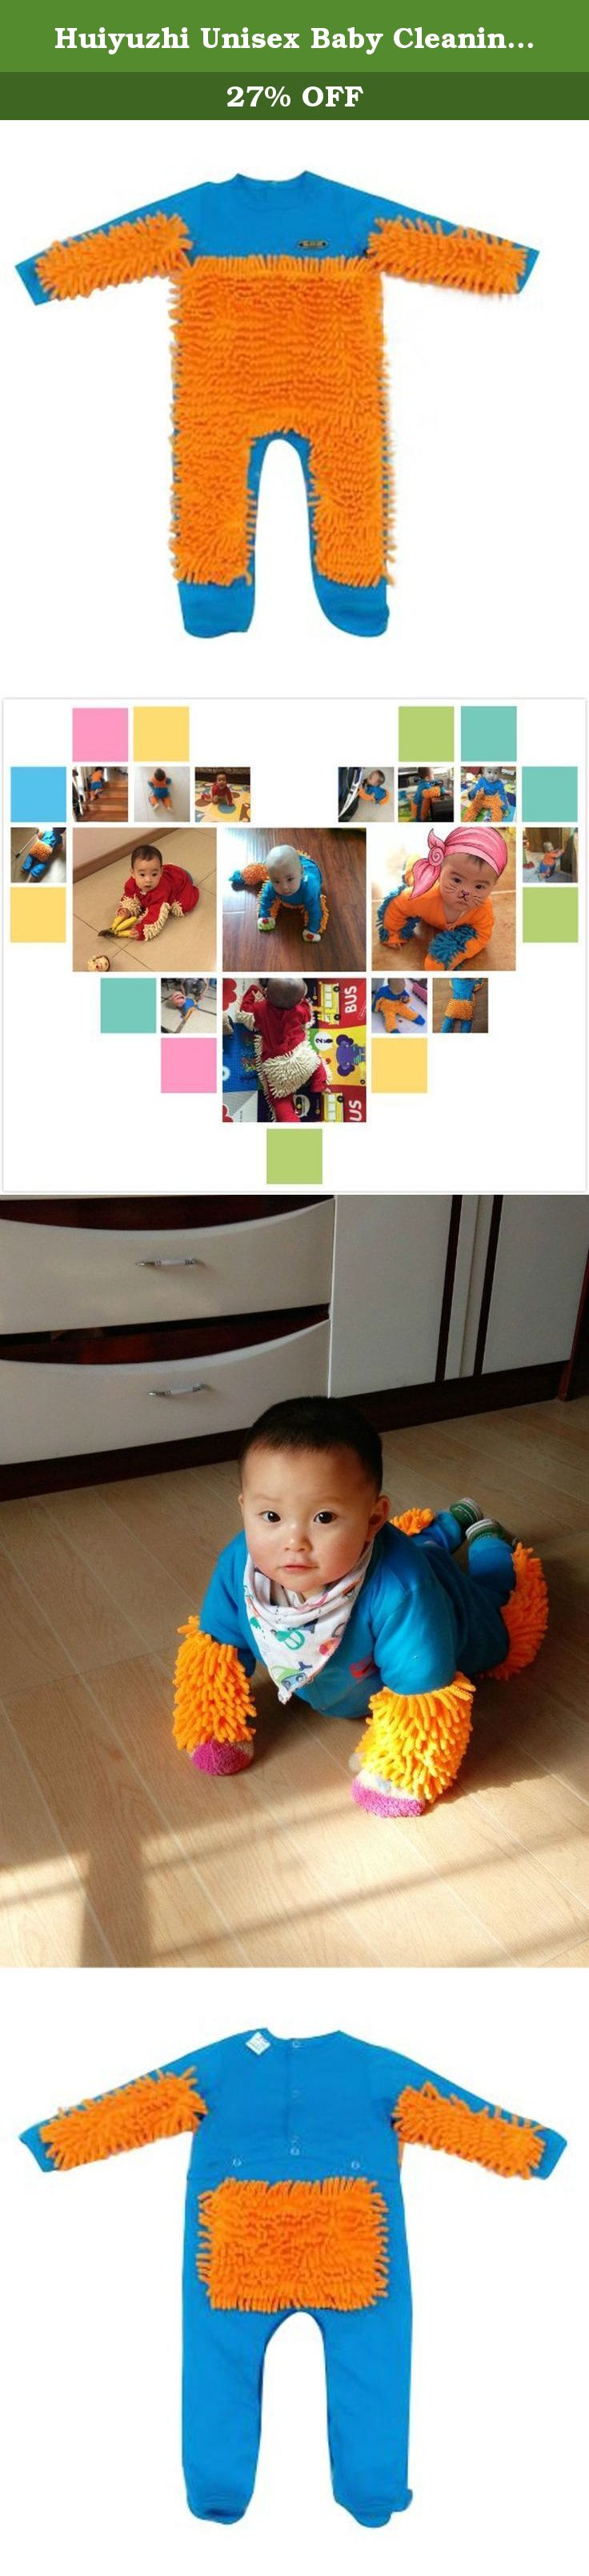 Huiyuzhi Uni Baby Cleaning Mop Rompers Jumpsuit Crawling